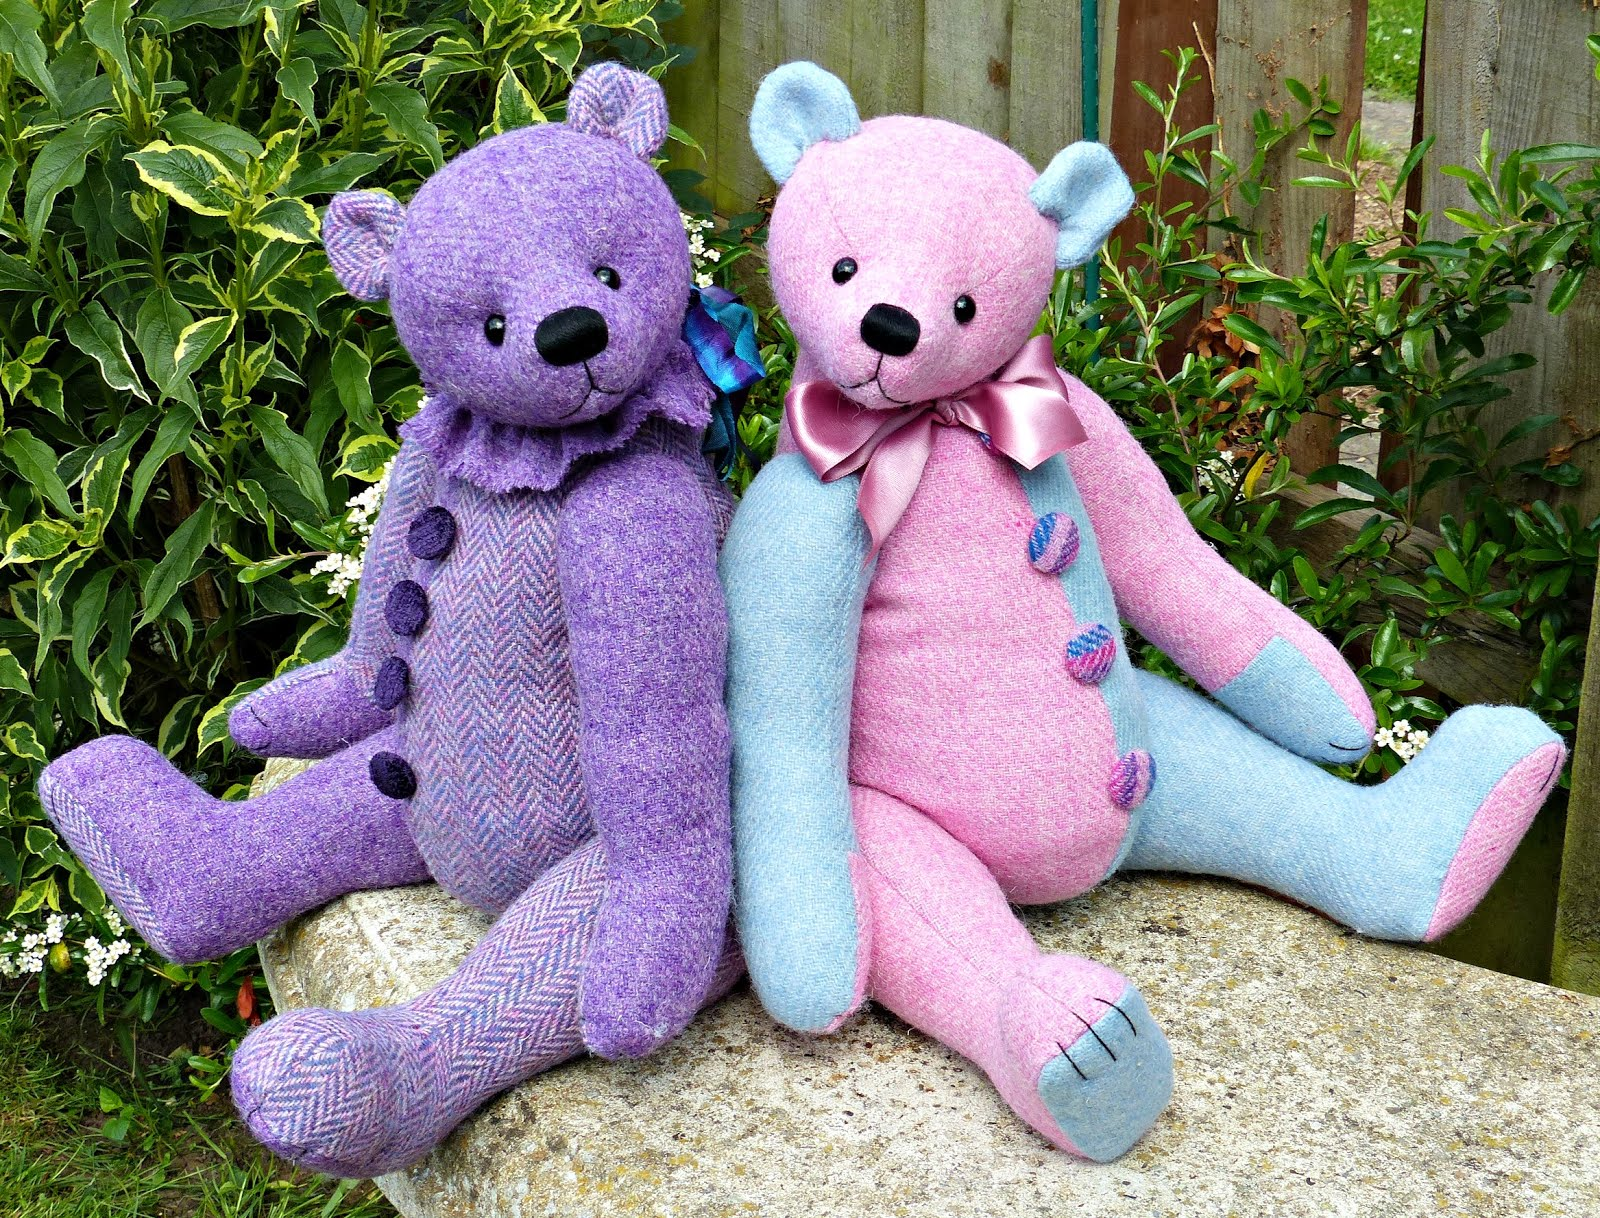 The Tweedy Teds